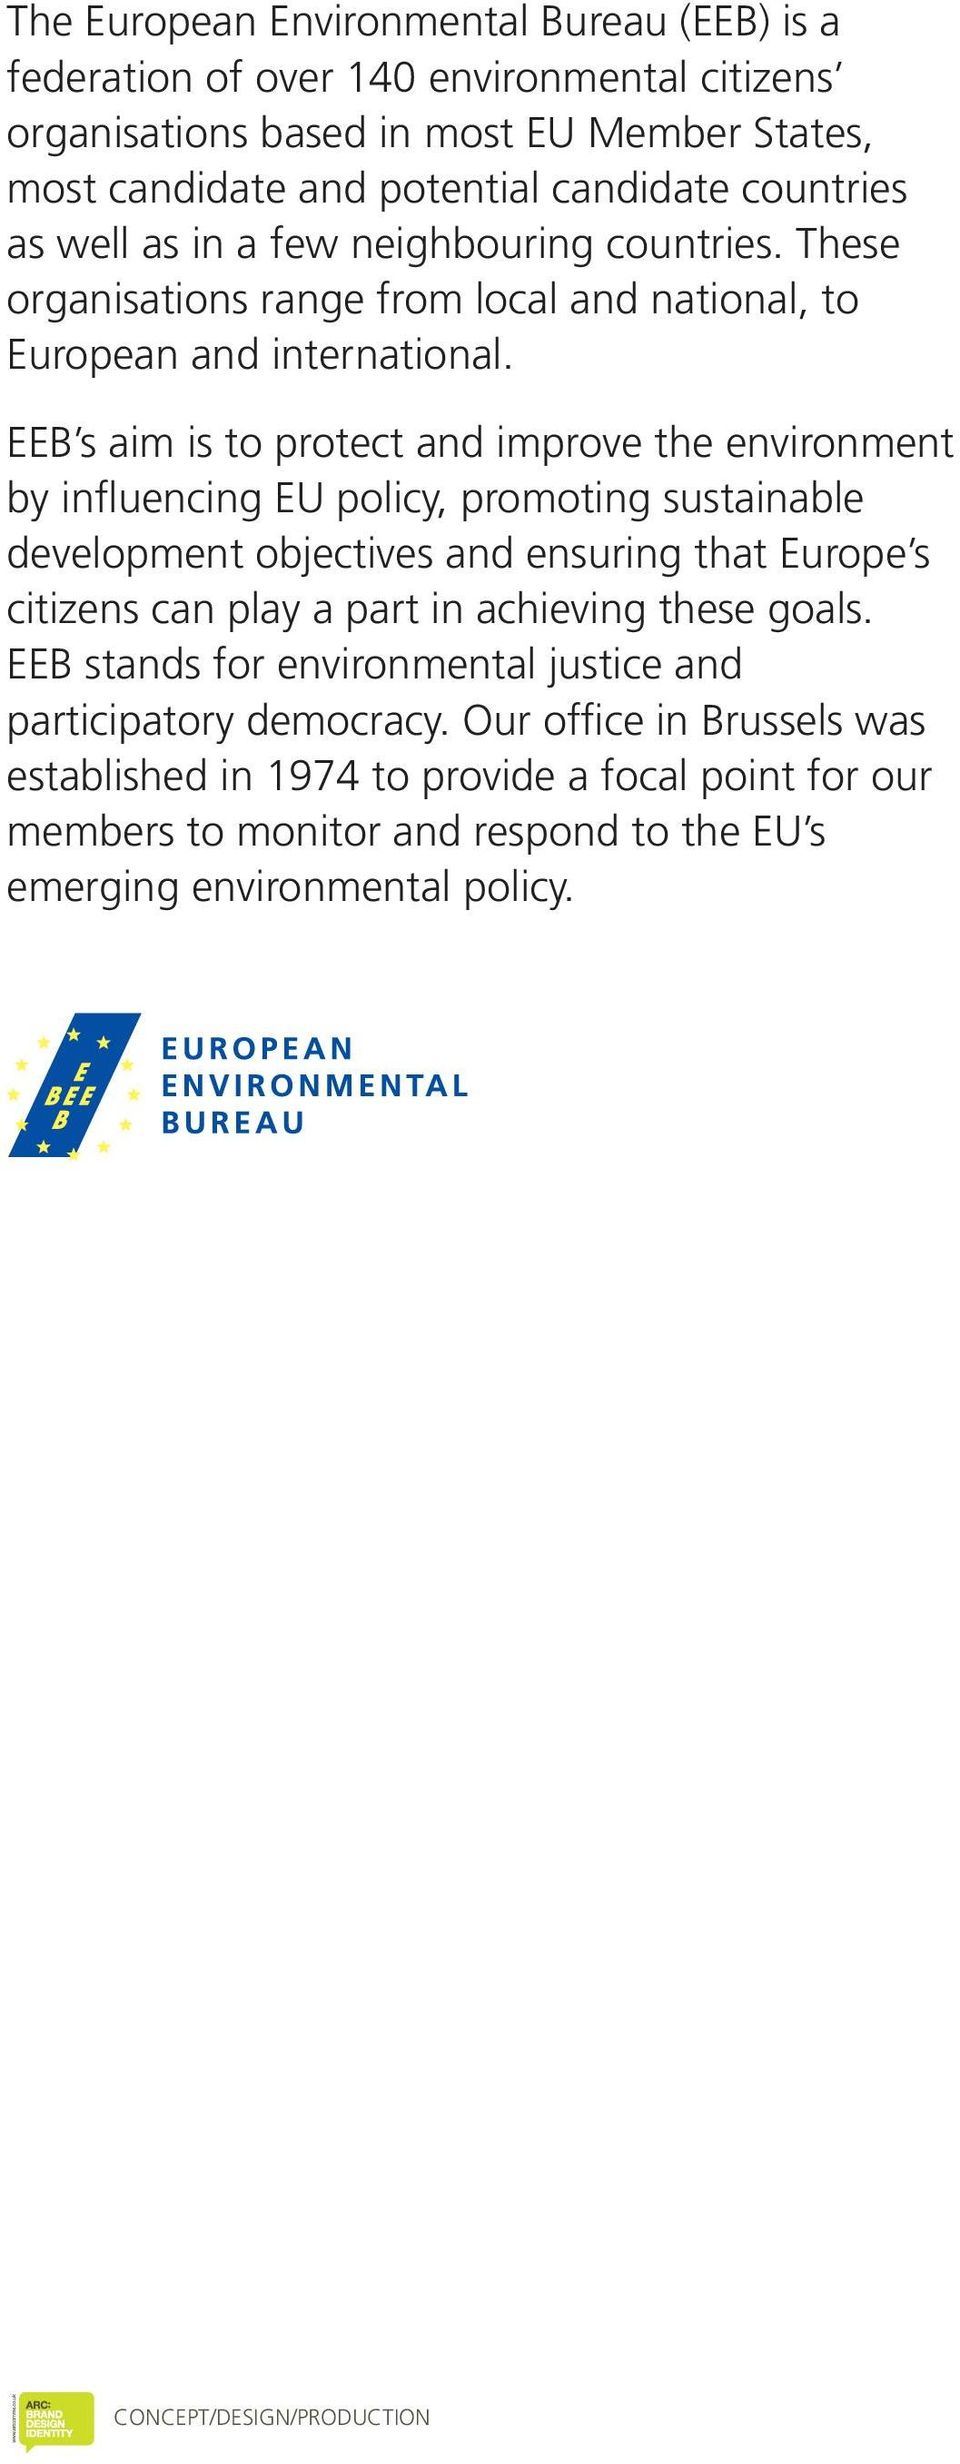 EEB s aim is to protect and improve the environment by influencing EU policy, promoting sustainable development objectives and ensuring that Europe s citizens can play a part in achieving